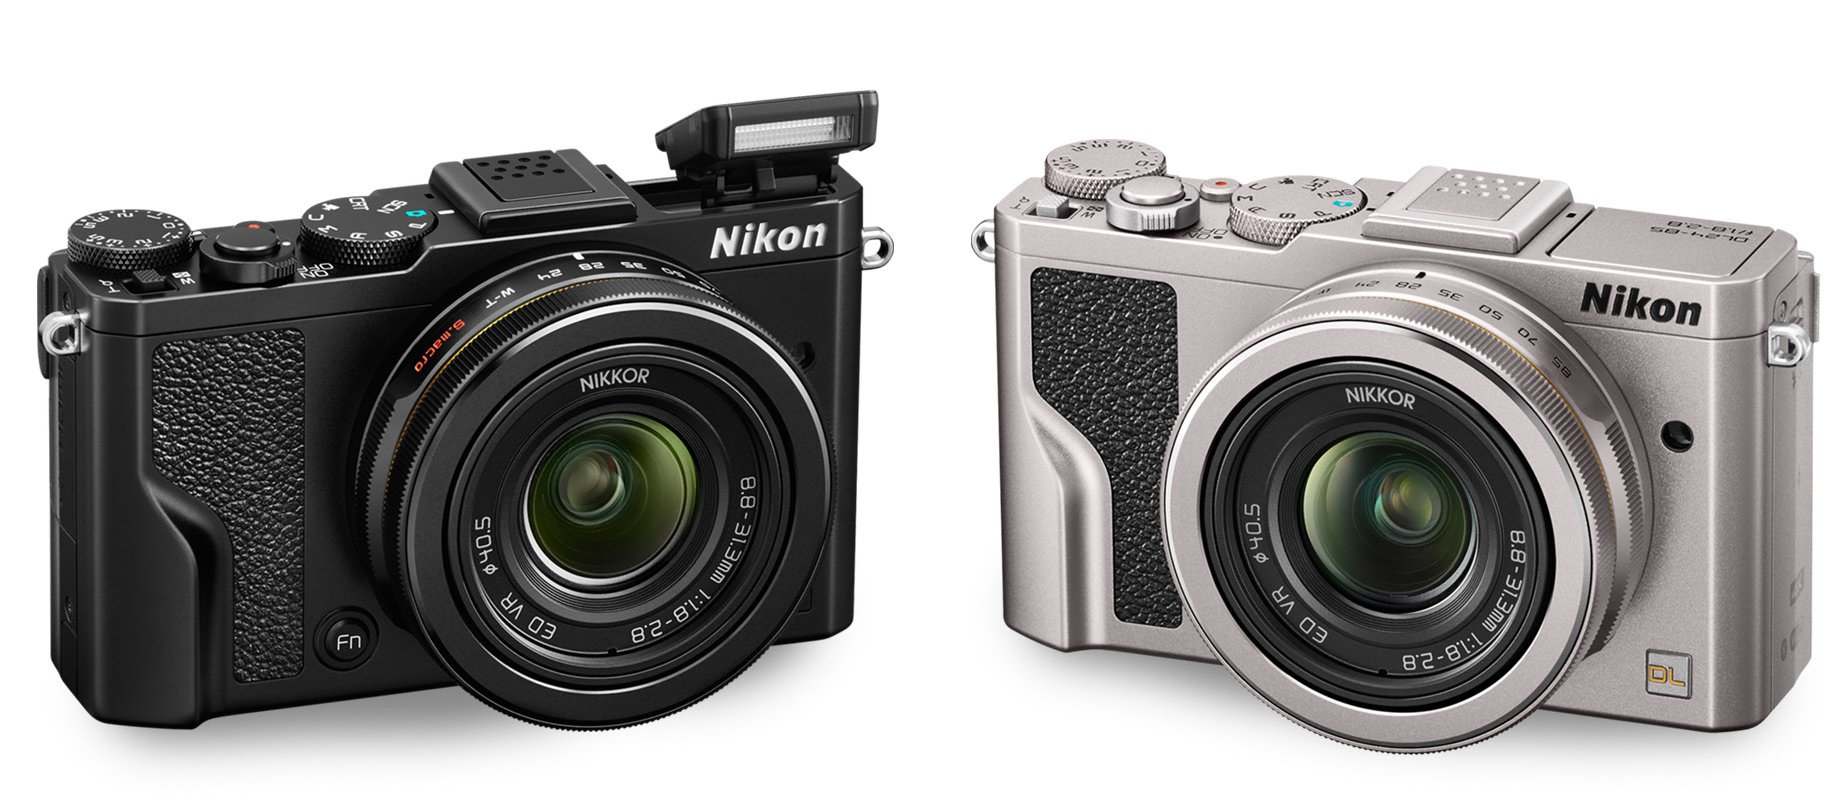 Camera Nikon Smallest Dslr Camera nikon dl24 85 premium compact i am into details 247 dslr users and the lens is detailed with signature gold nikkor ring an optional leather camera case available in classic black